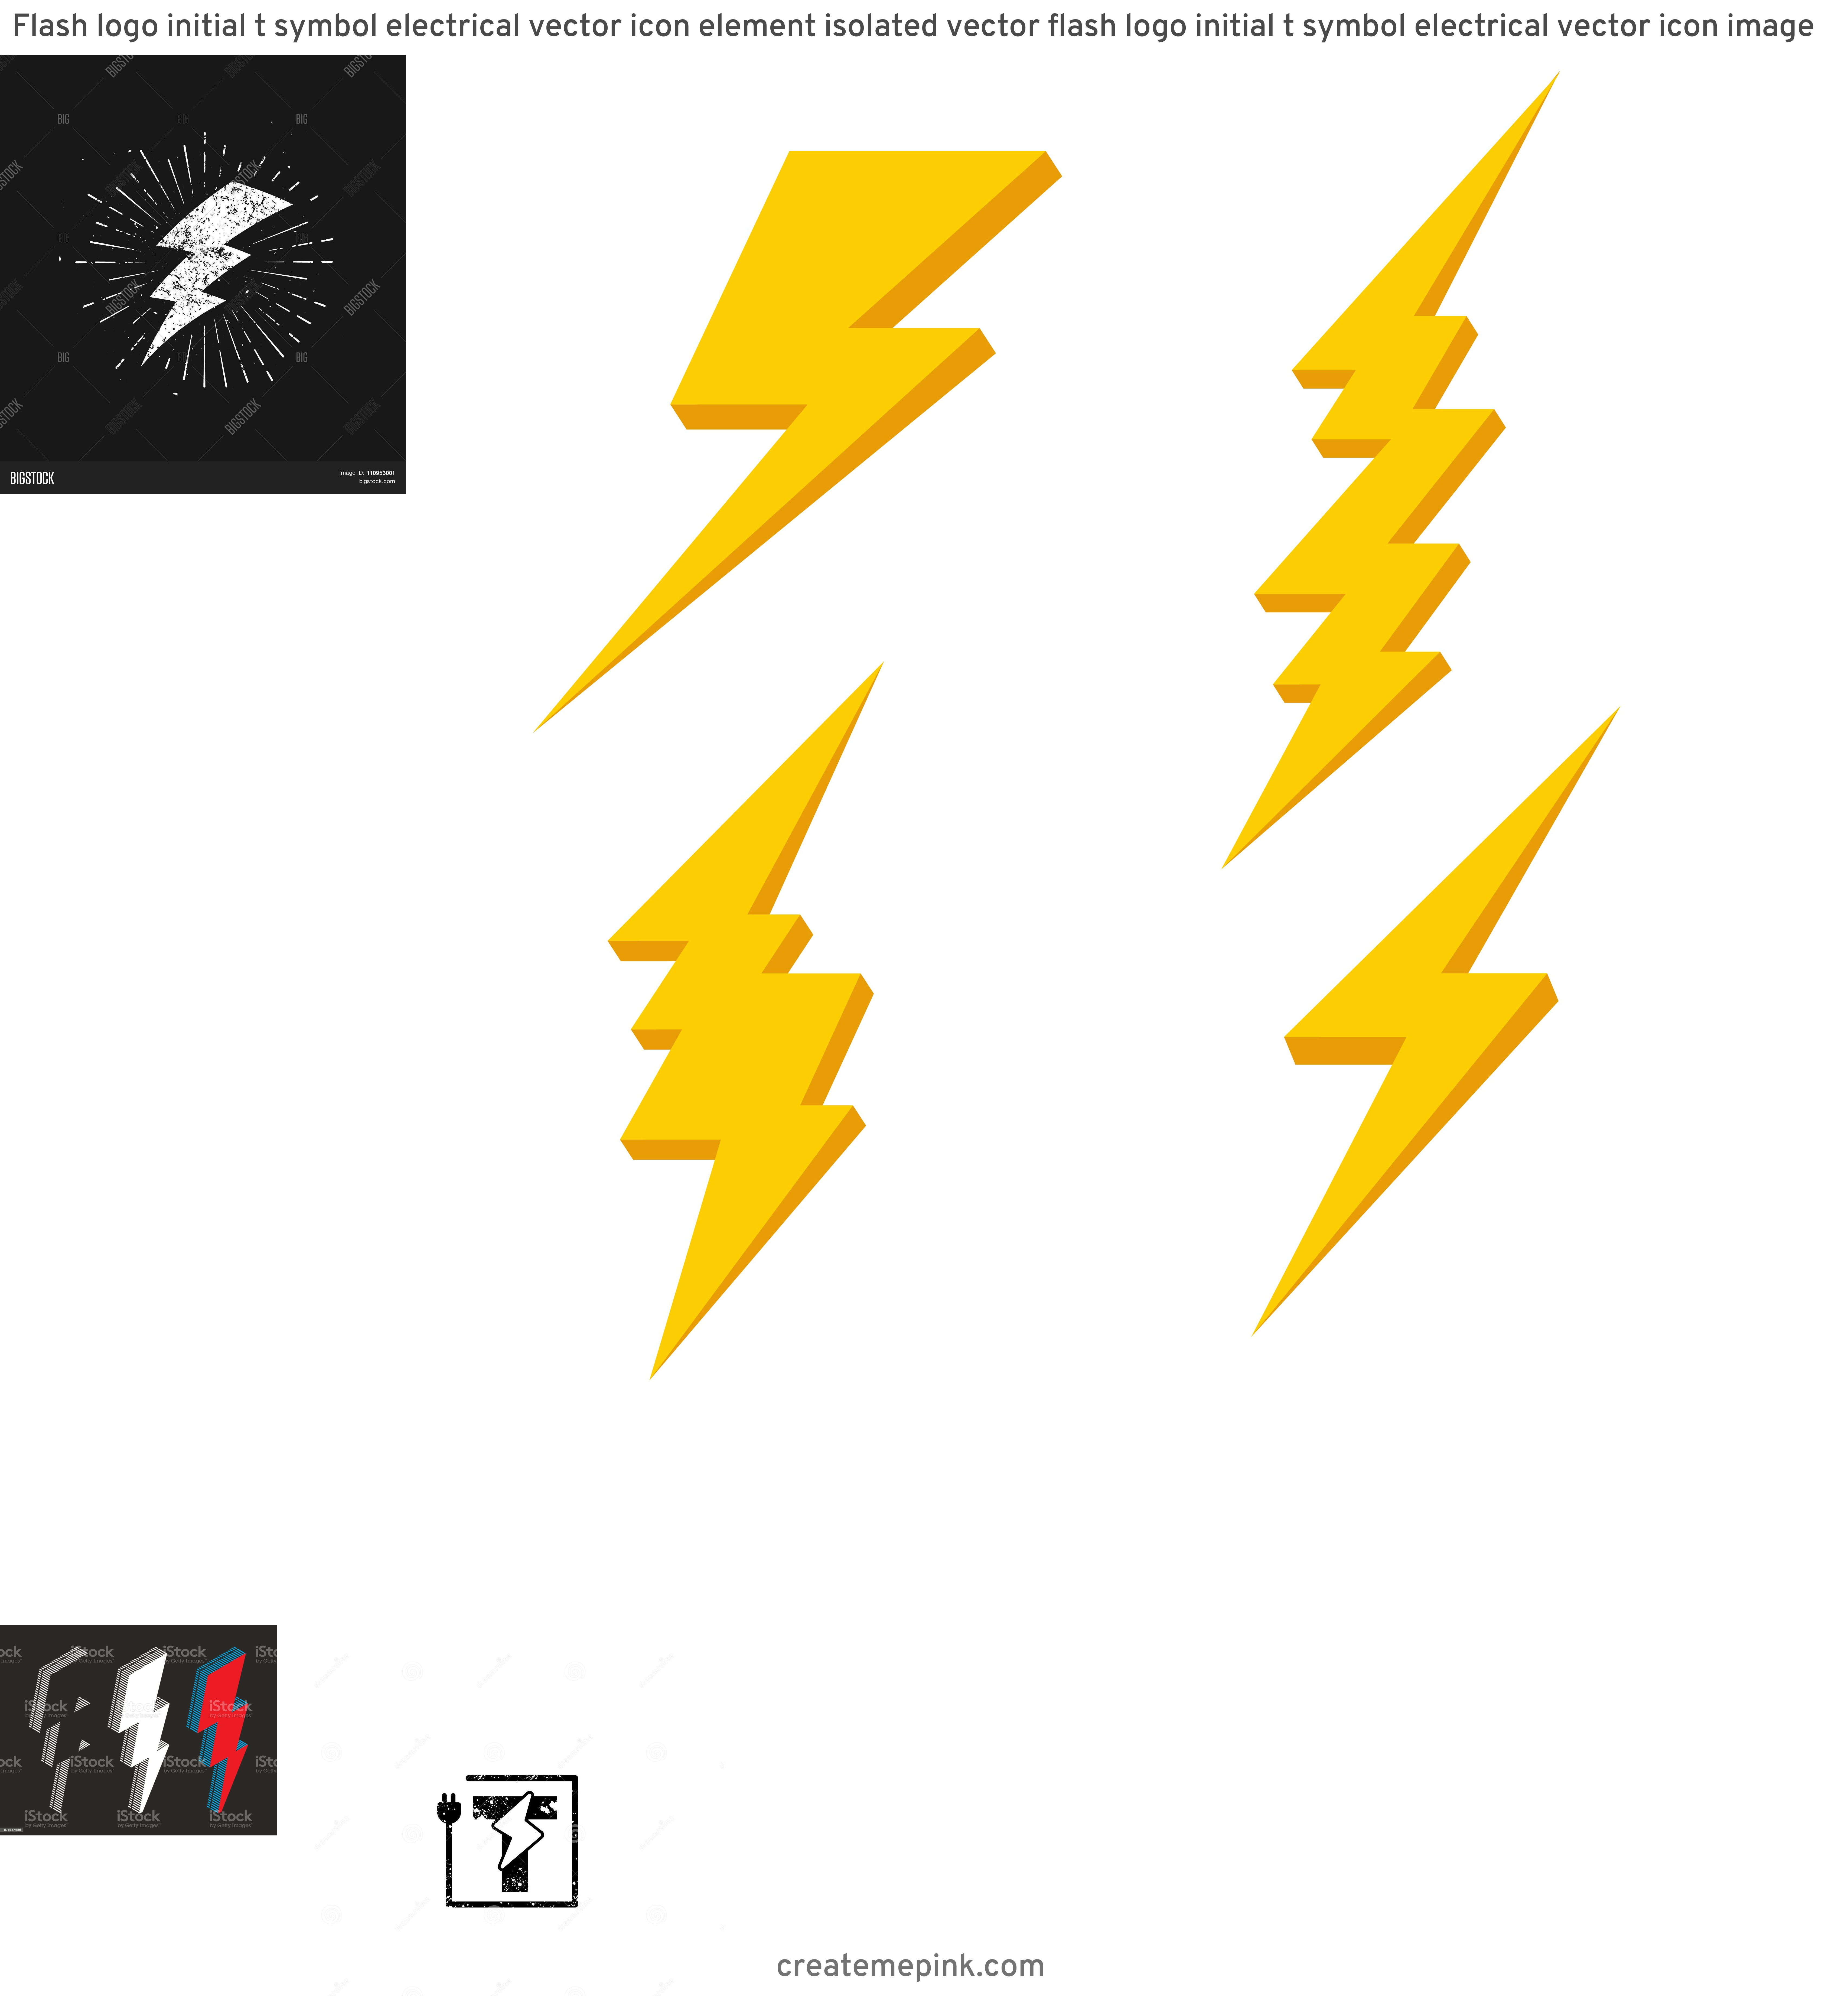 Lightning Vector T: Flash Logo Initial T Symbol Electrical Vector Icon Element Isolated Vector Flash Logo Initial T Symbol Electrical Vector Icon Image